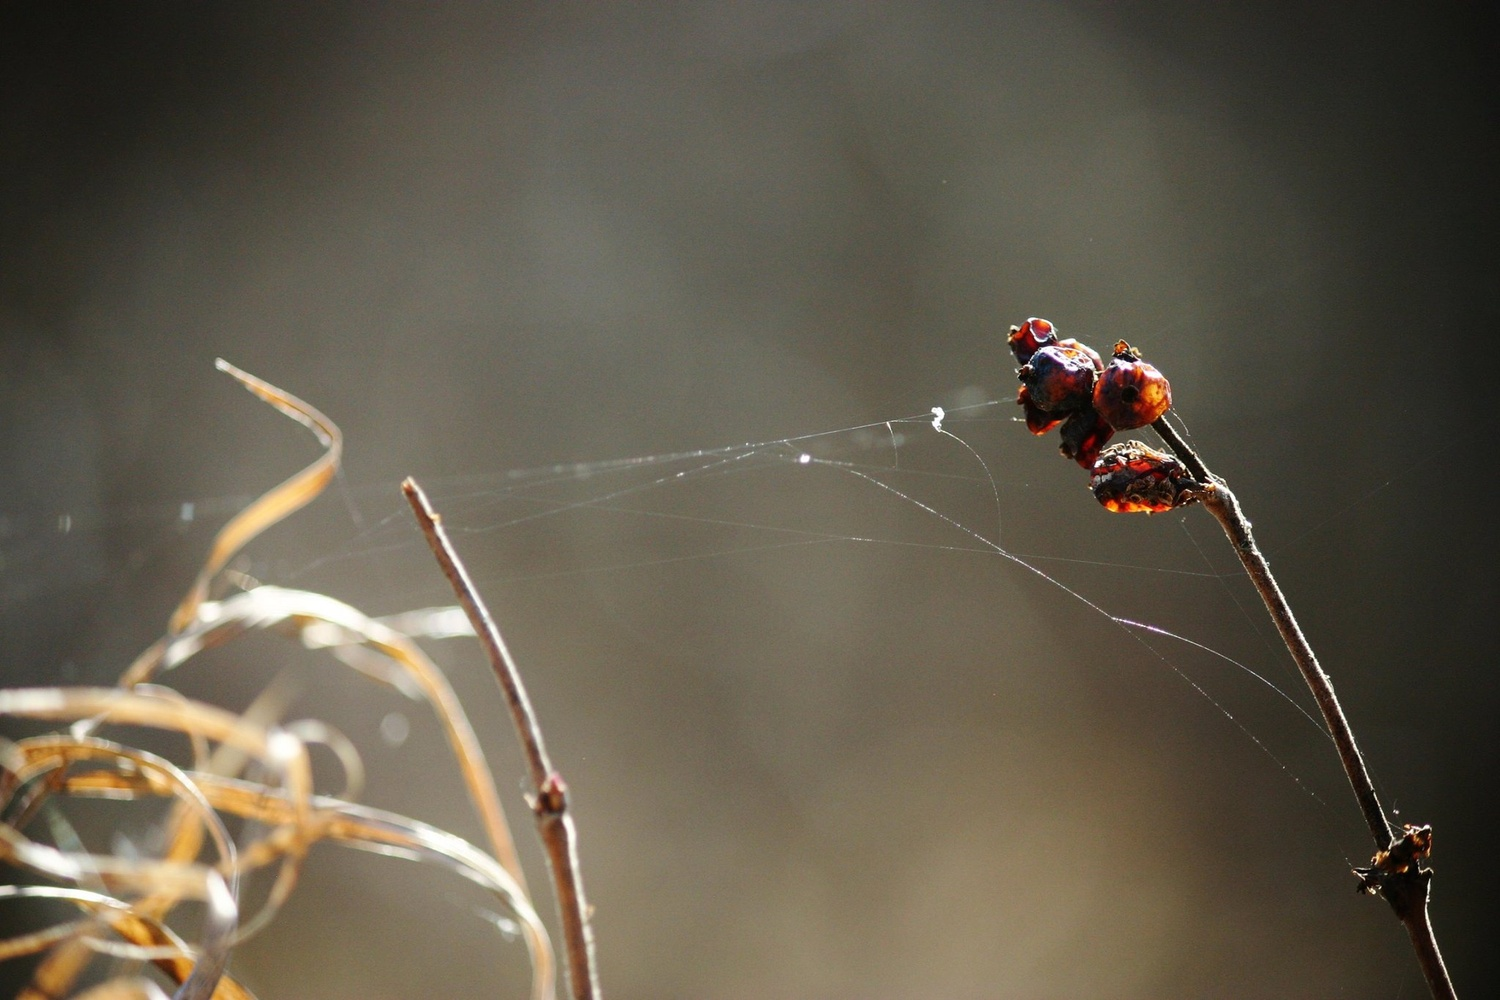 Weaving a Tangled Web by Brittney Fulton